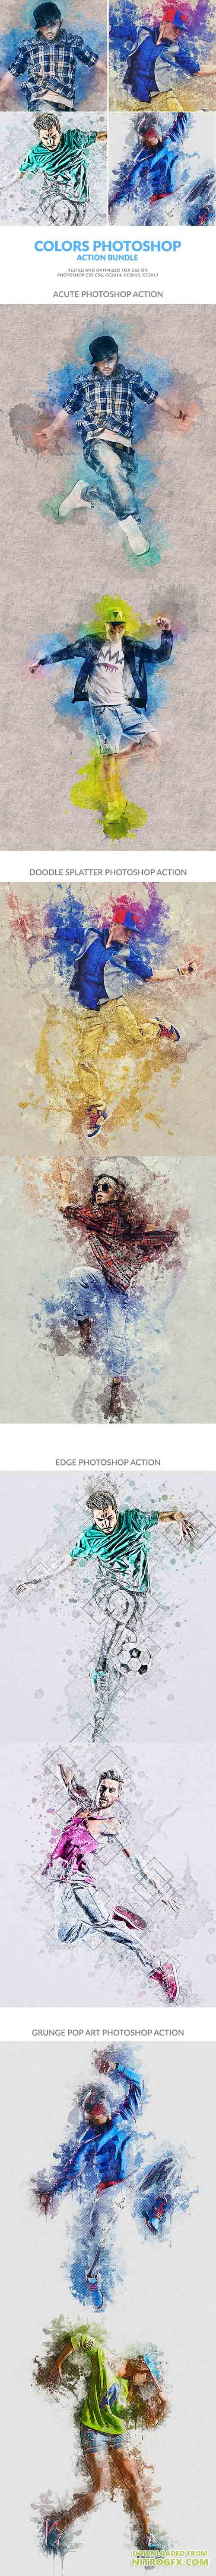 GraphicRiver - Colors Photoshop Action Bundle 20650570